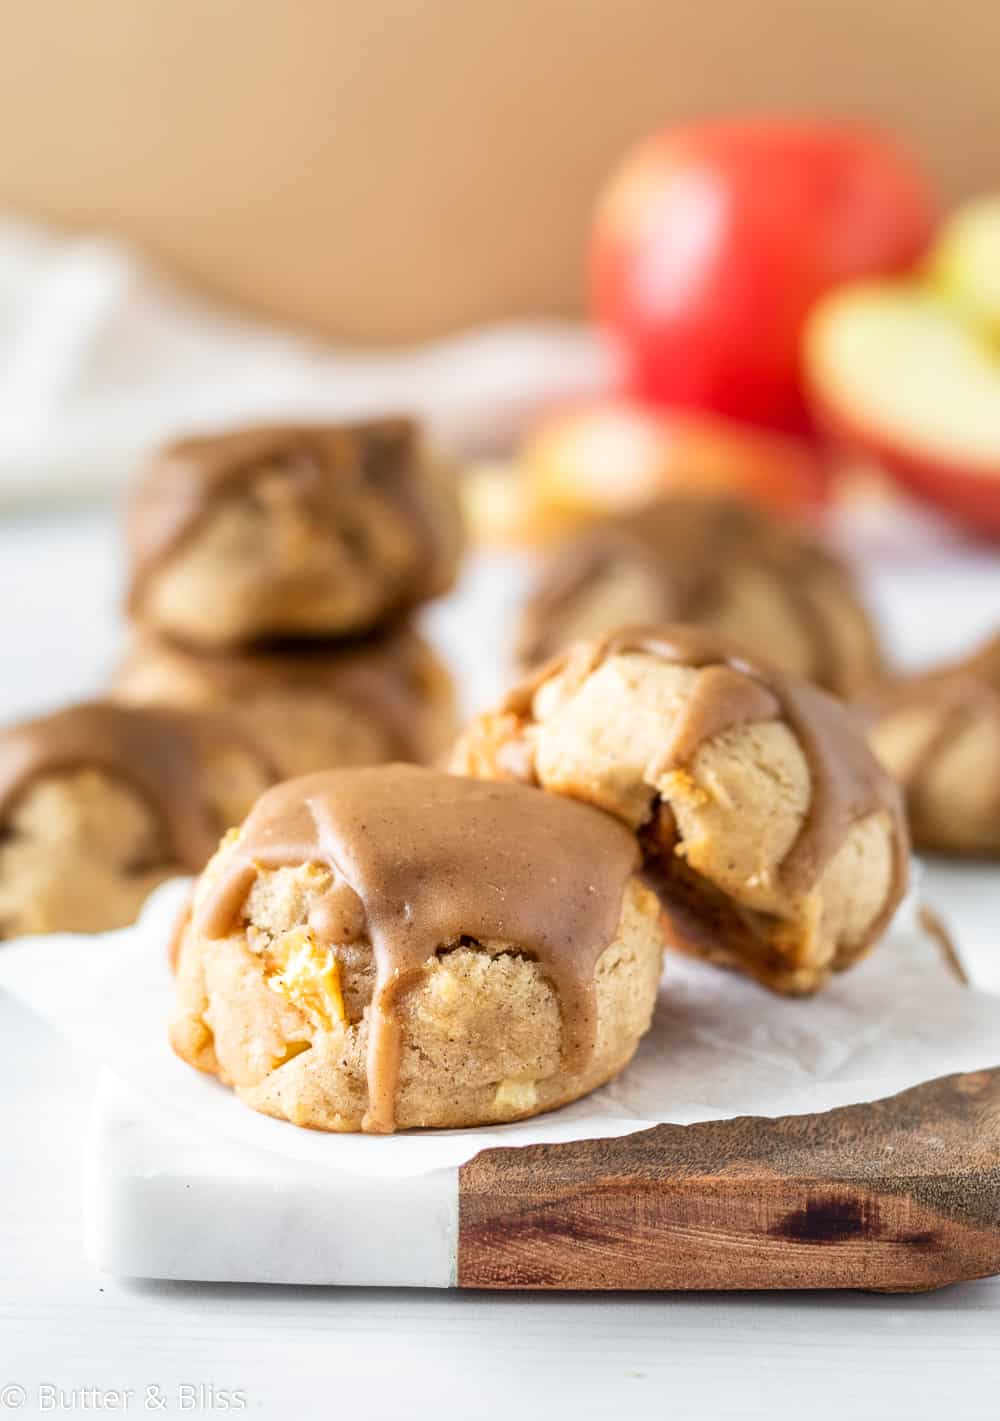 Soft apple cookie with caramel icing on a small plate